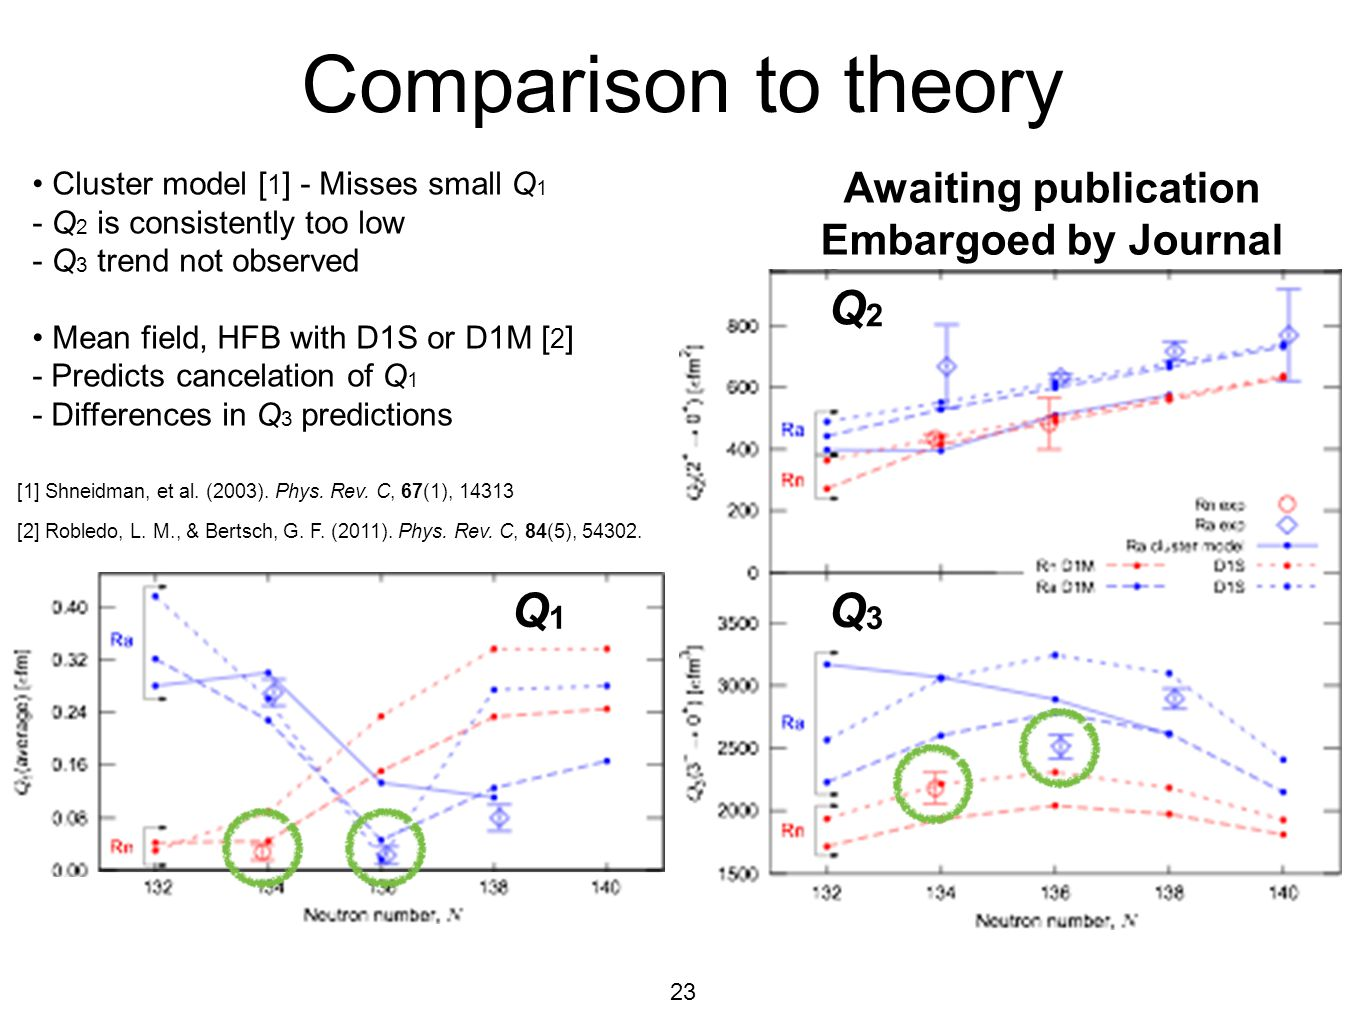 23 Comparison to theory Q1Q1 Q2Q2 Q3Q3 Cluster model [ 1 ] - Misses small Q 1 - Q 2 is consistently too low - Q 3 trend not observed Mean field, HFB w